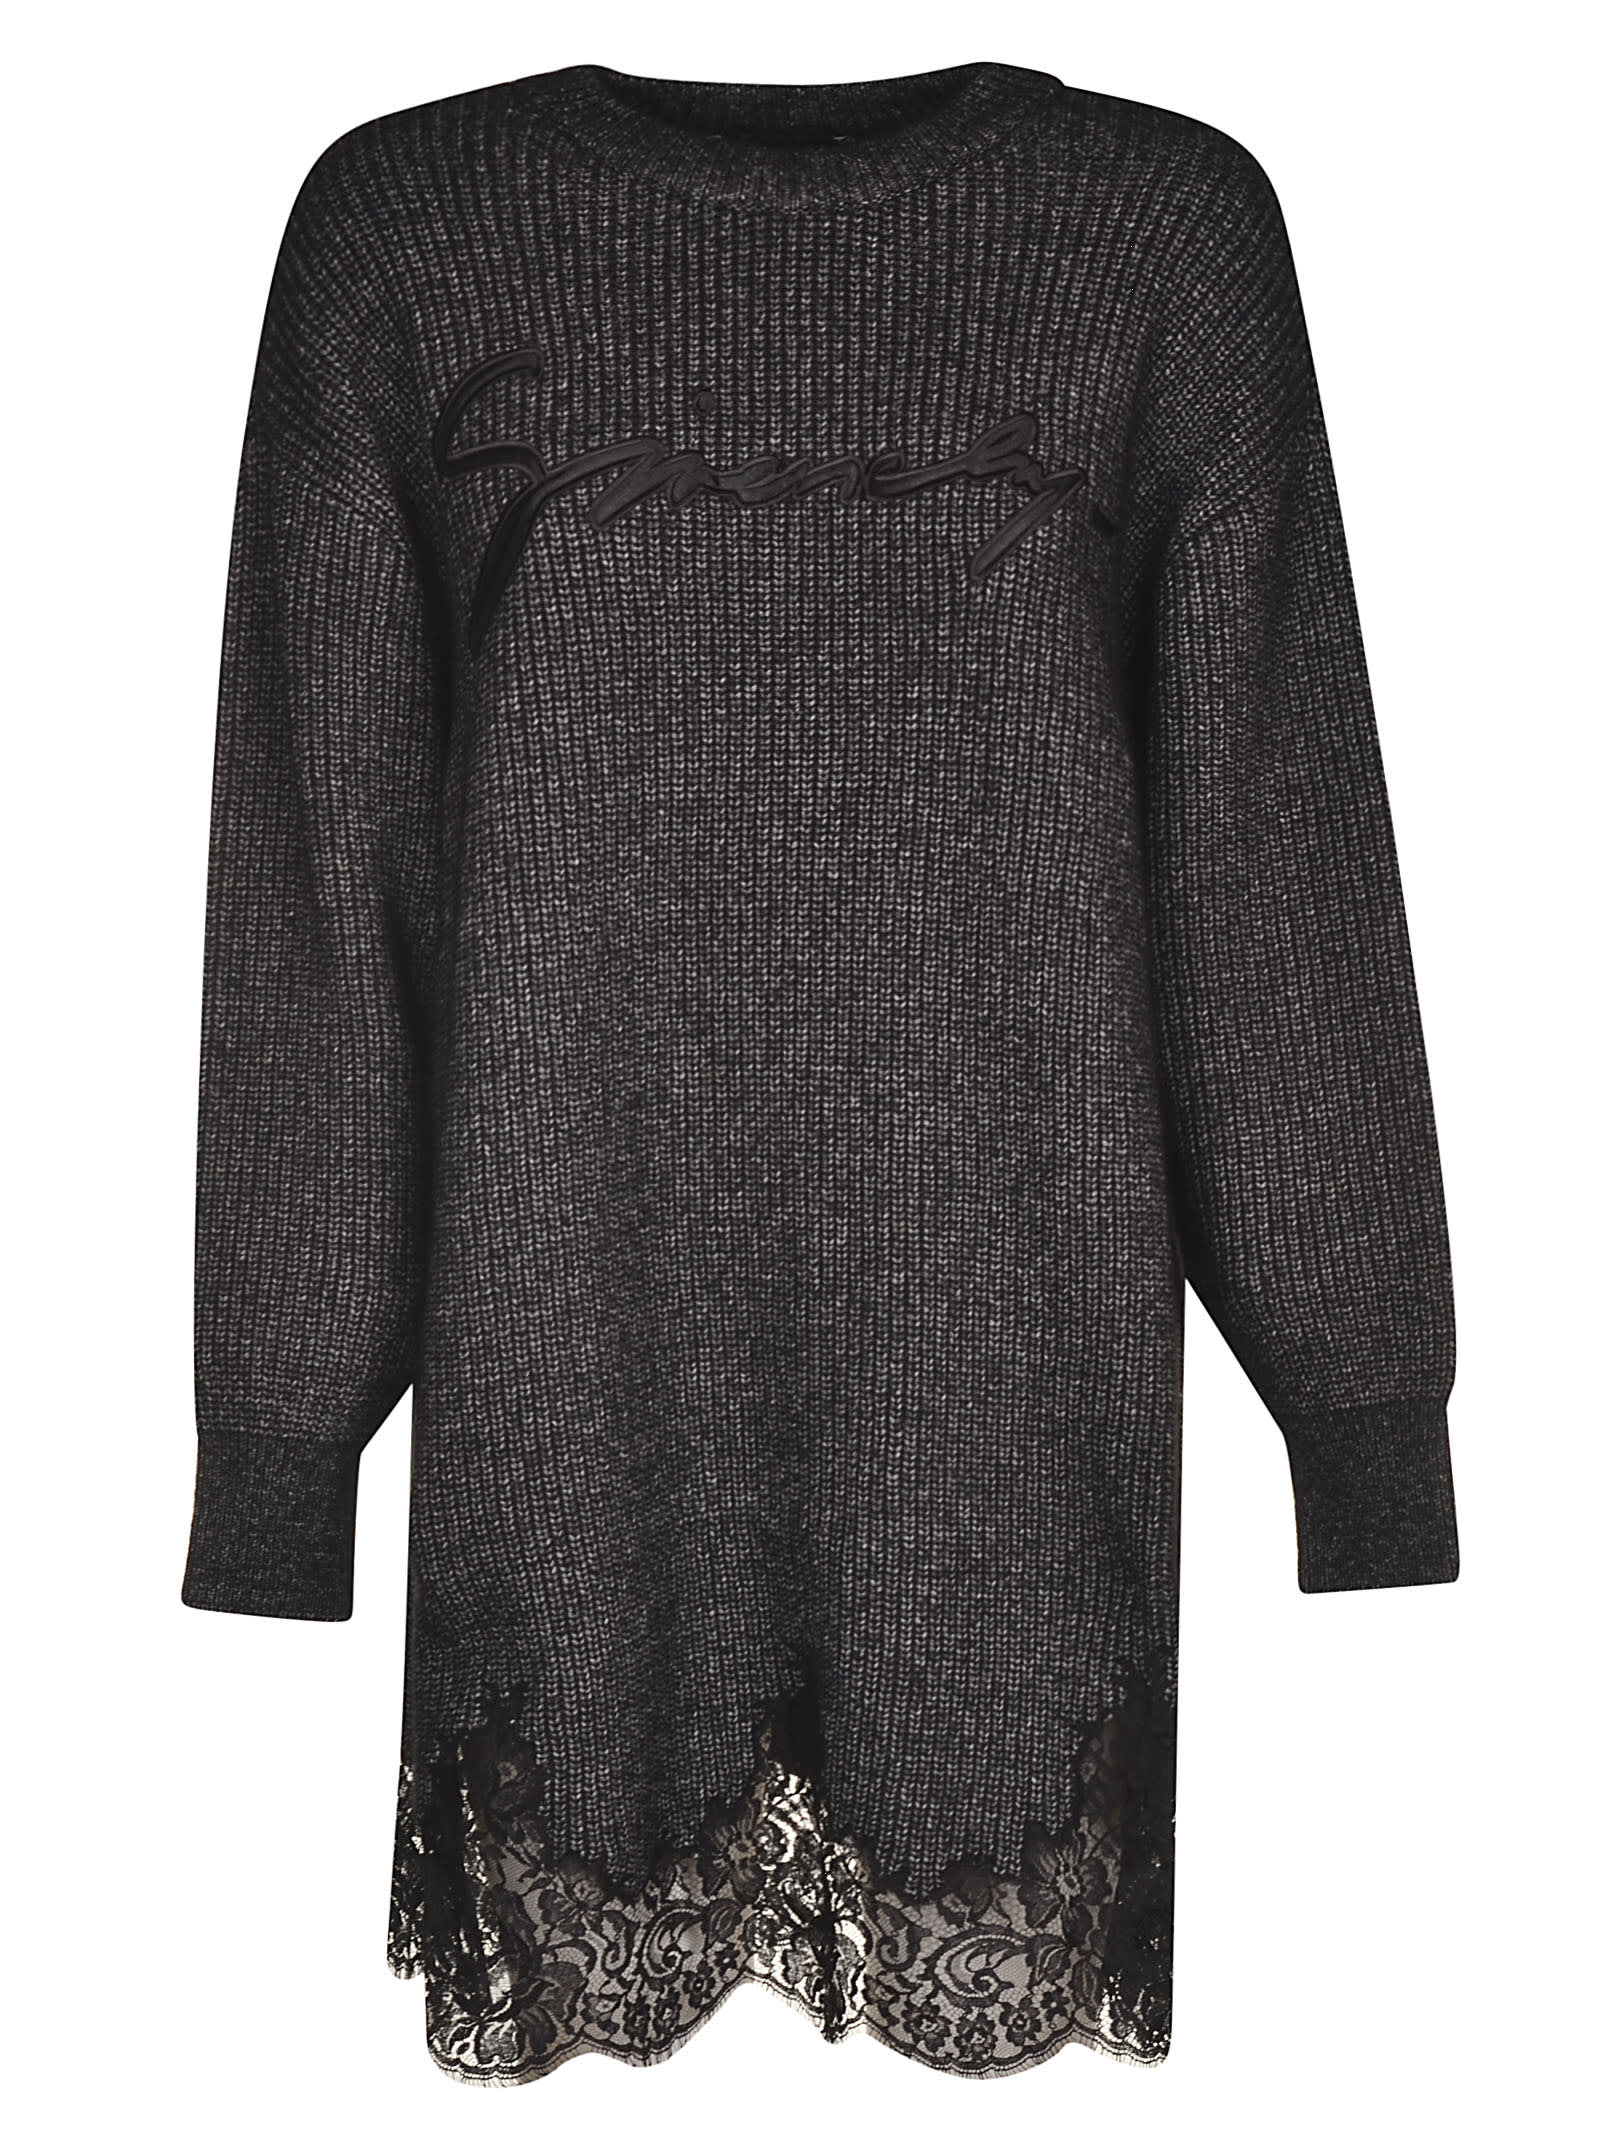 Givenchy Logo Embroidered Dress